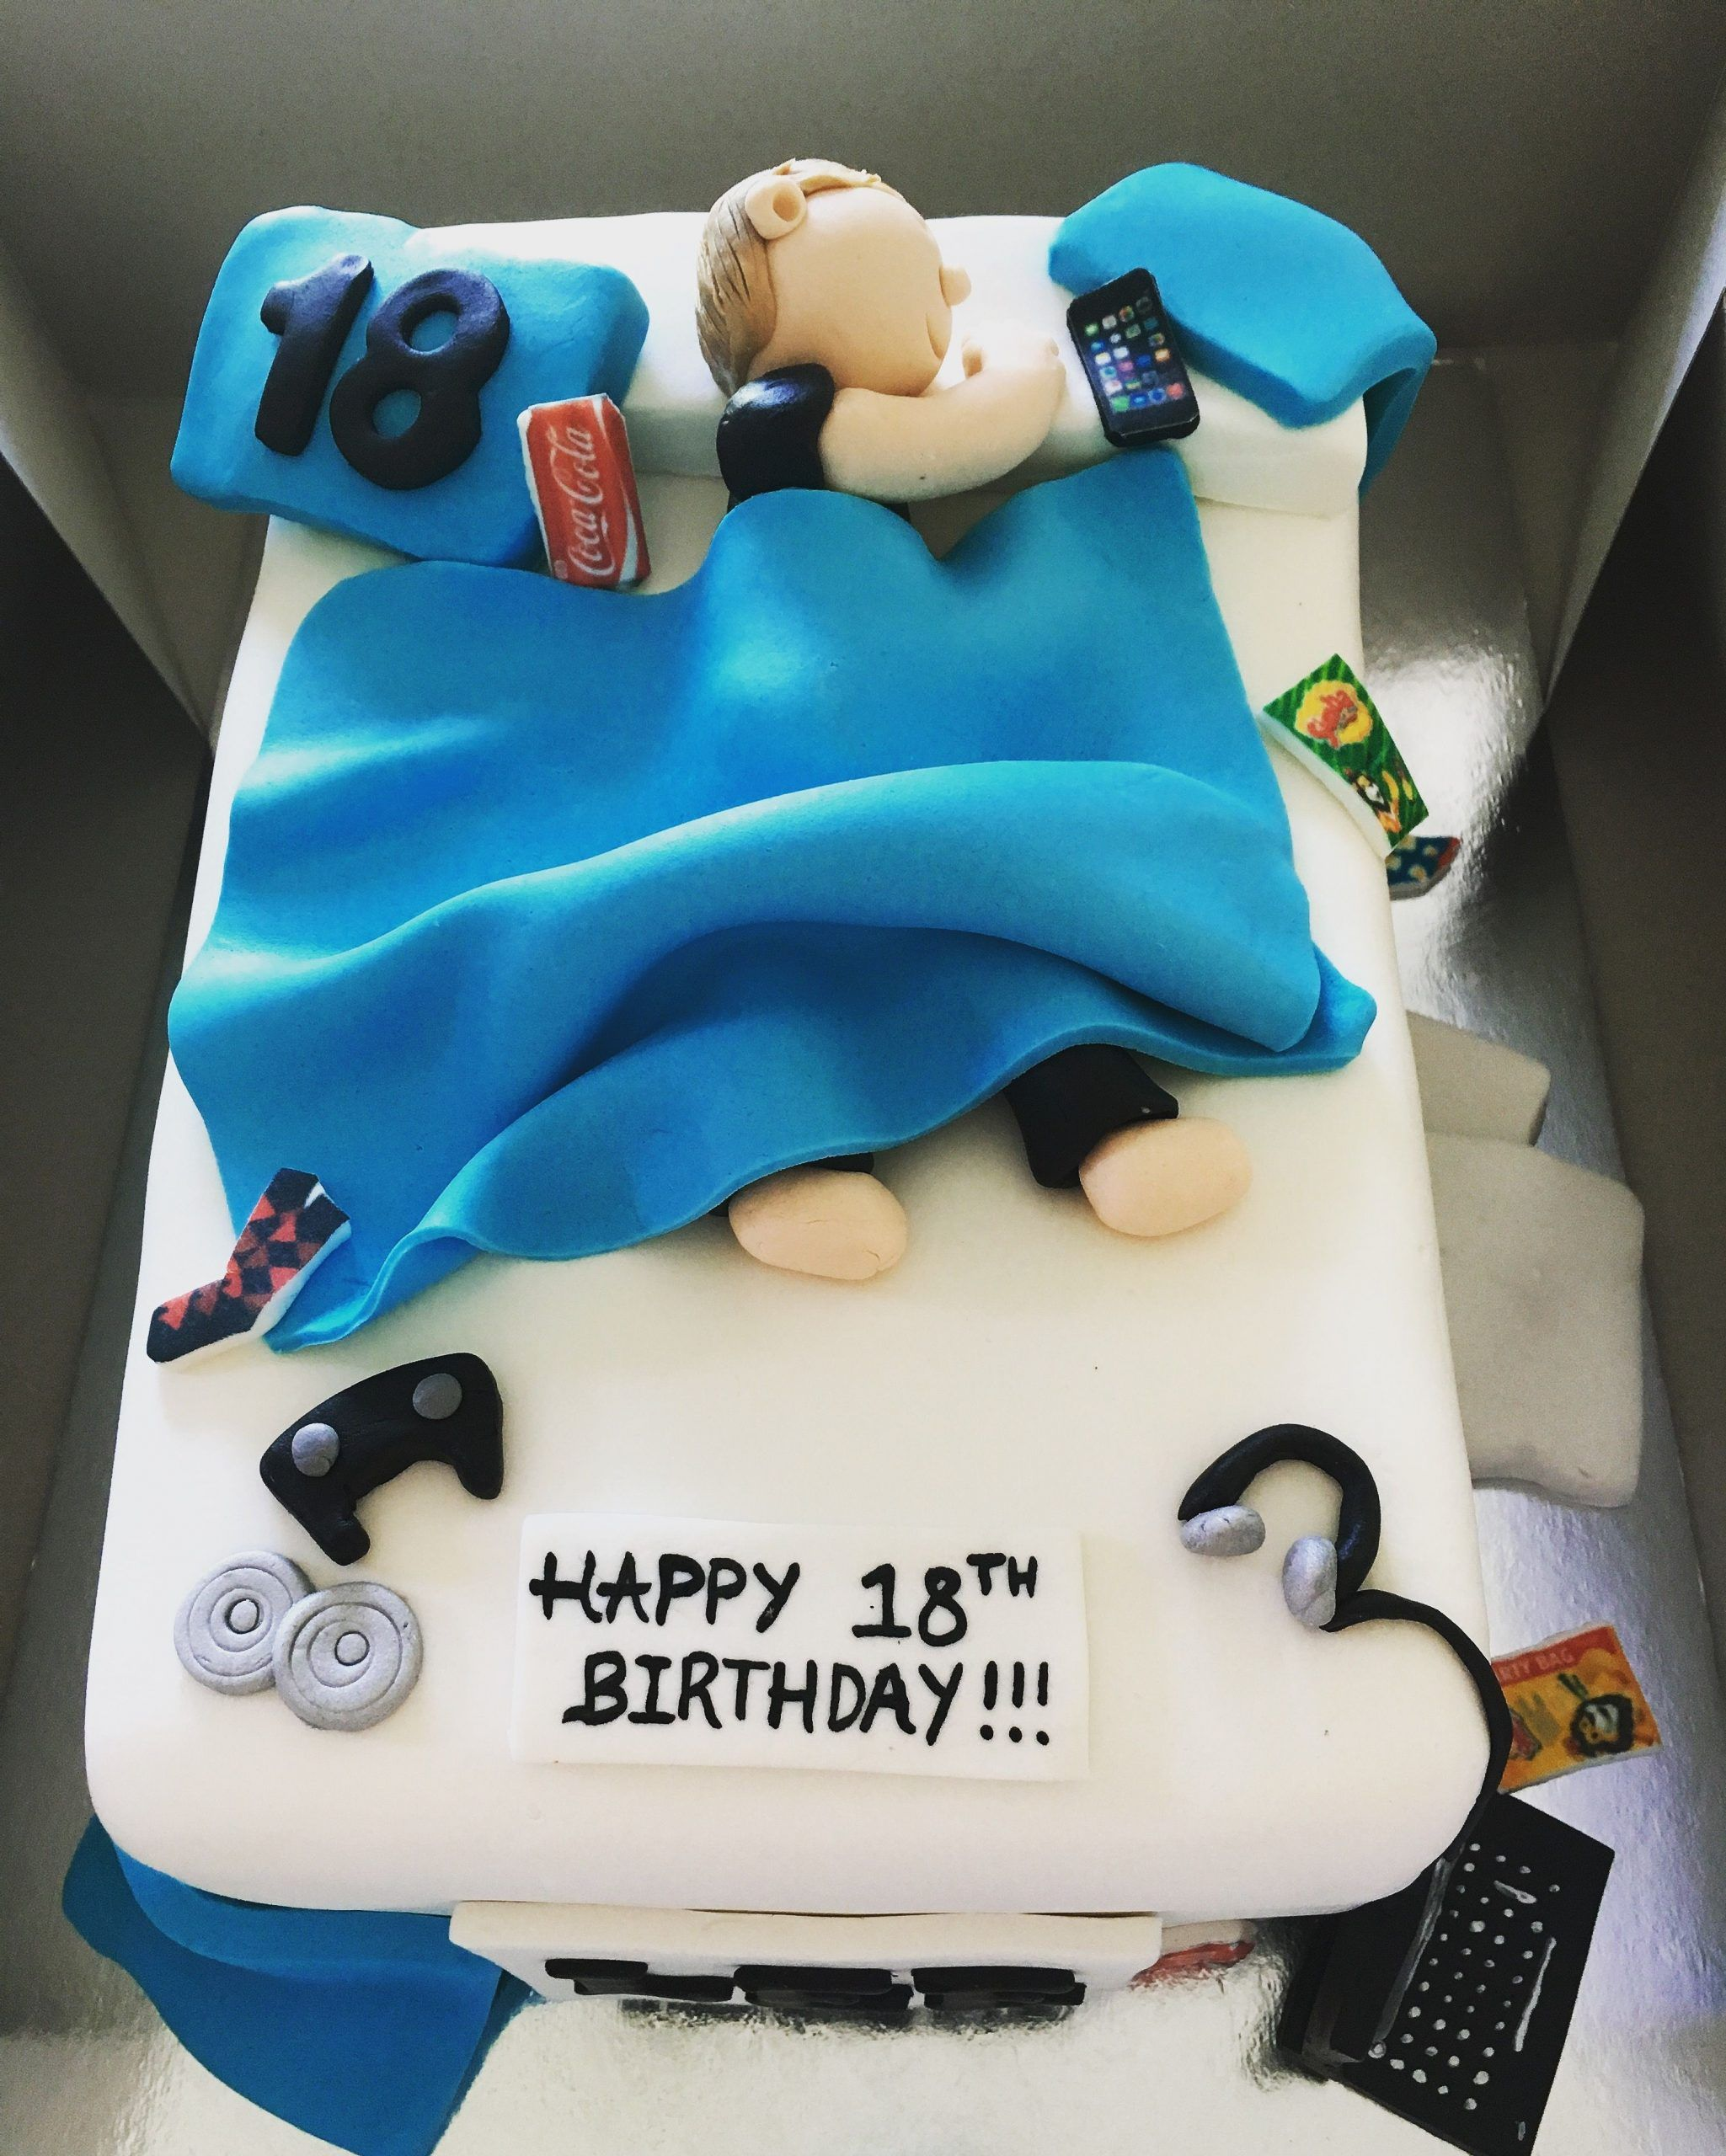 18th Birthday Cake Ideas For Guys : birthday, ideas, Birthday, Ideas, Cakes, Teens,, Funny, Cakes,